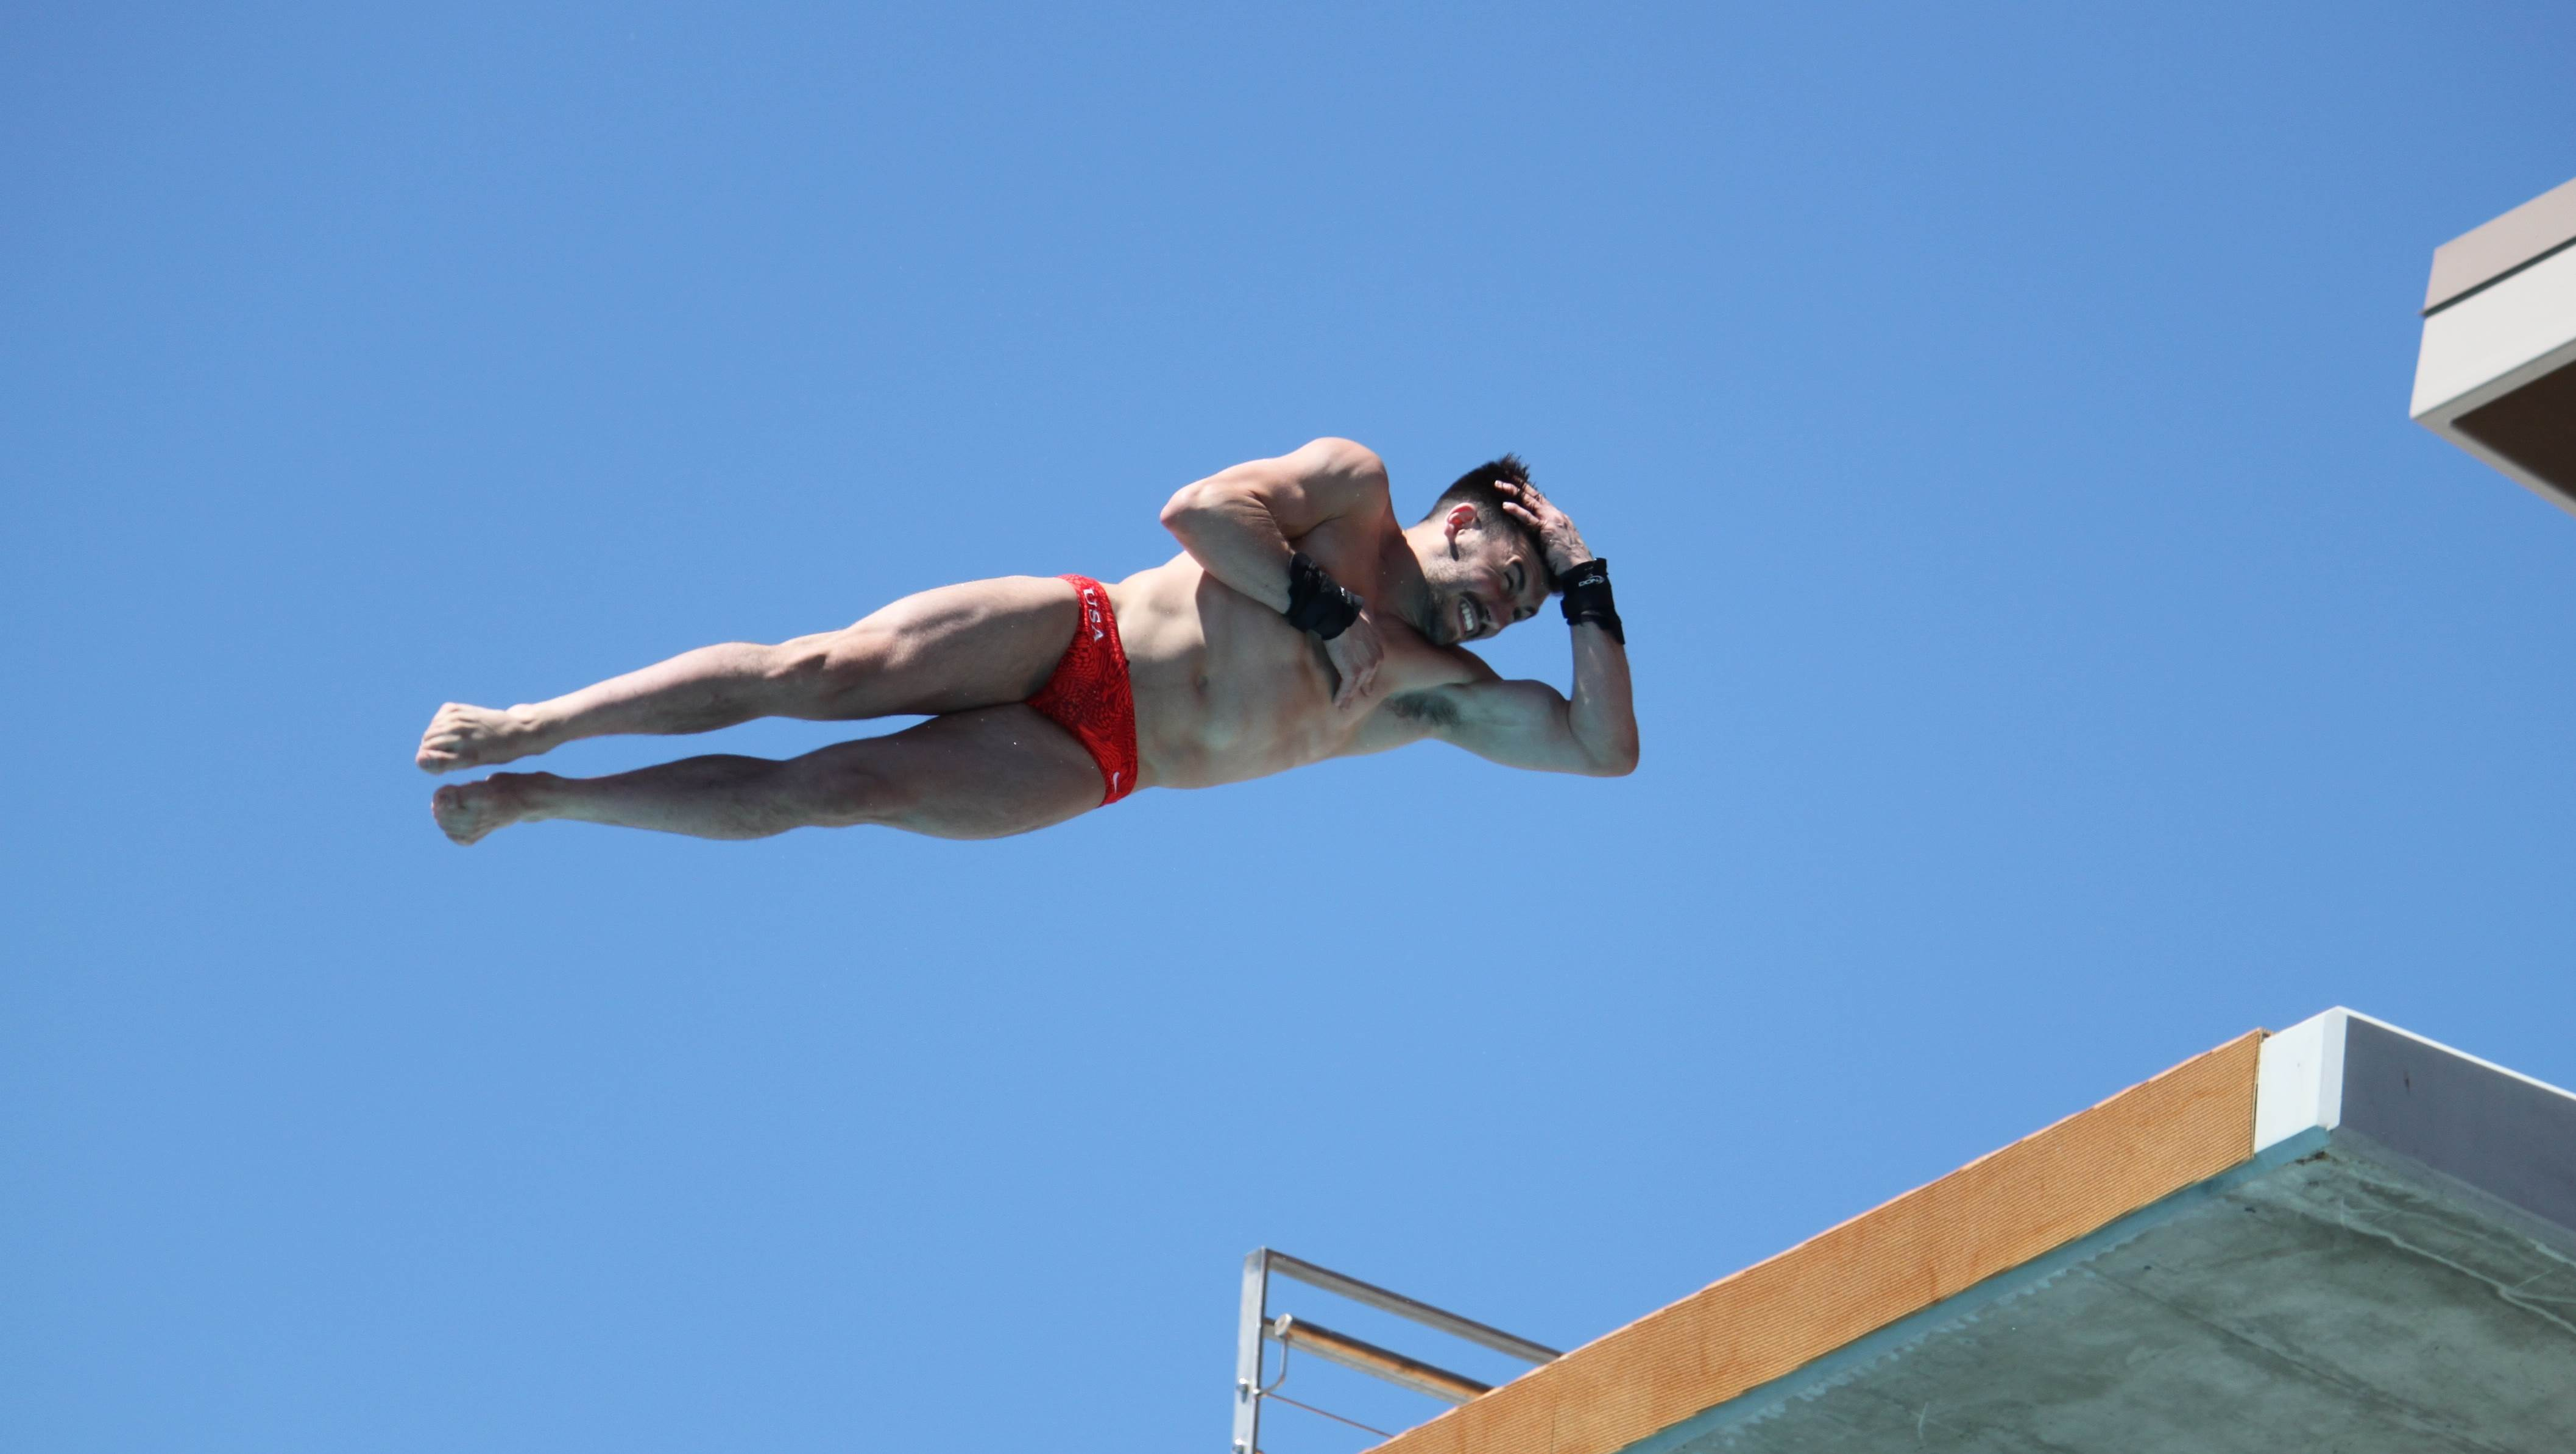 usa diver diving off high board